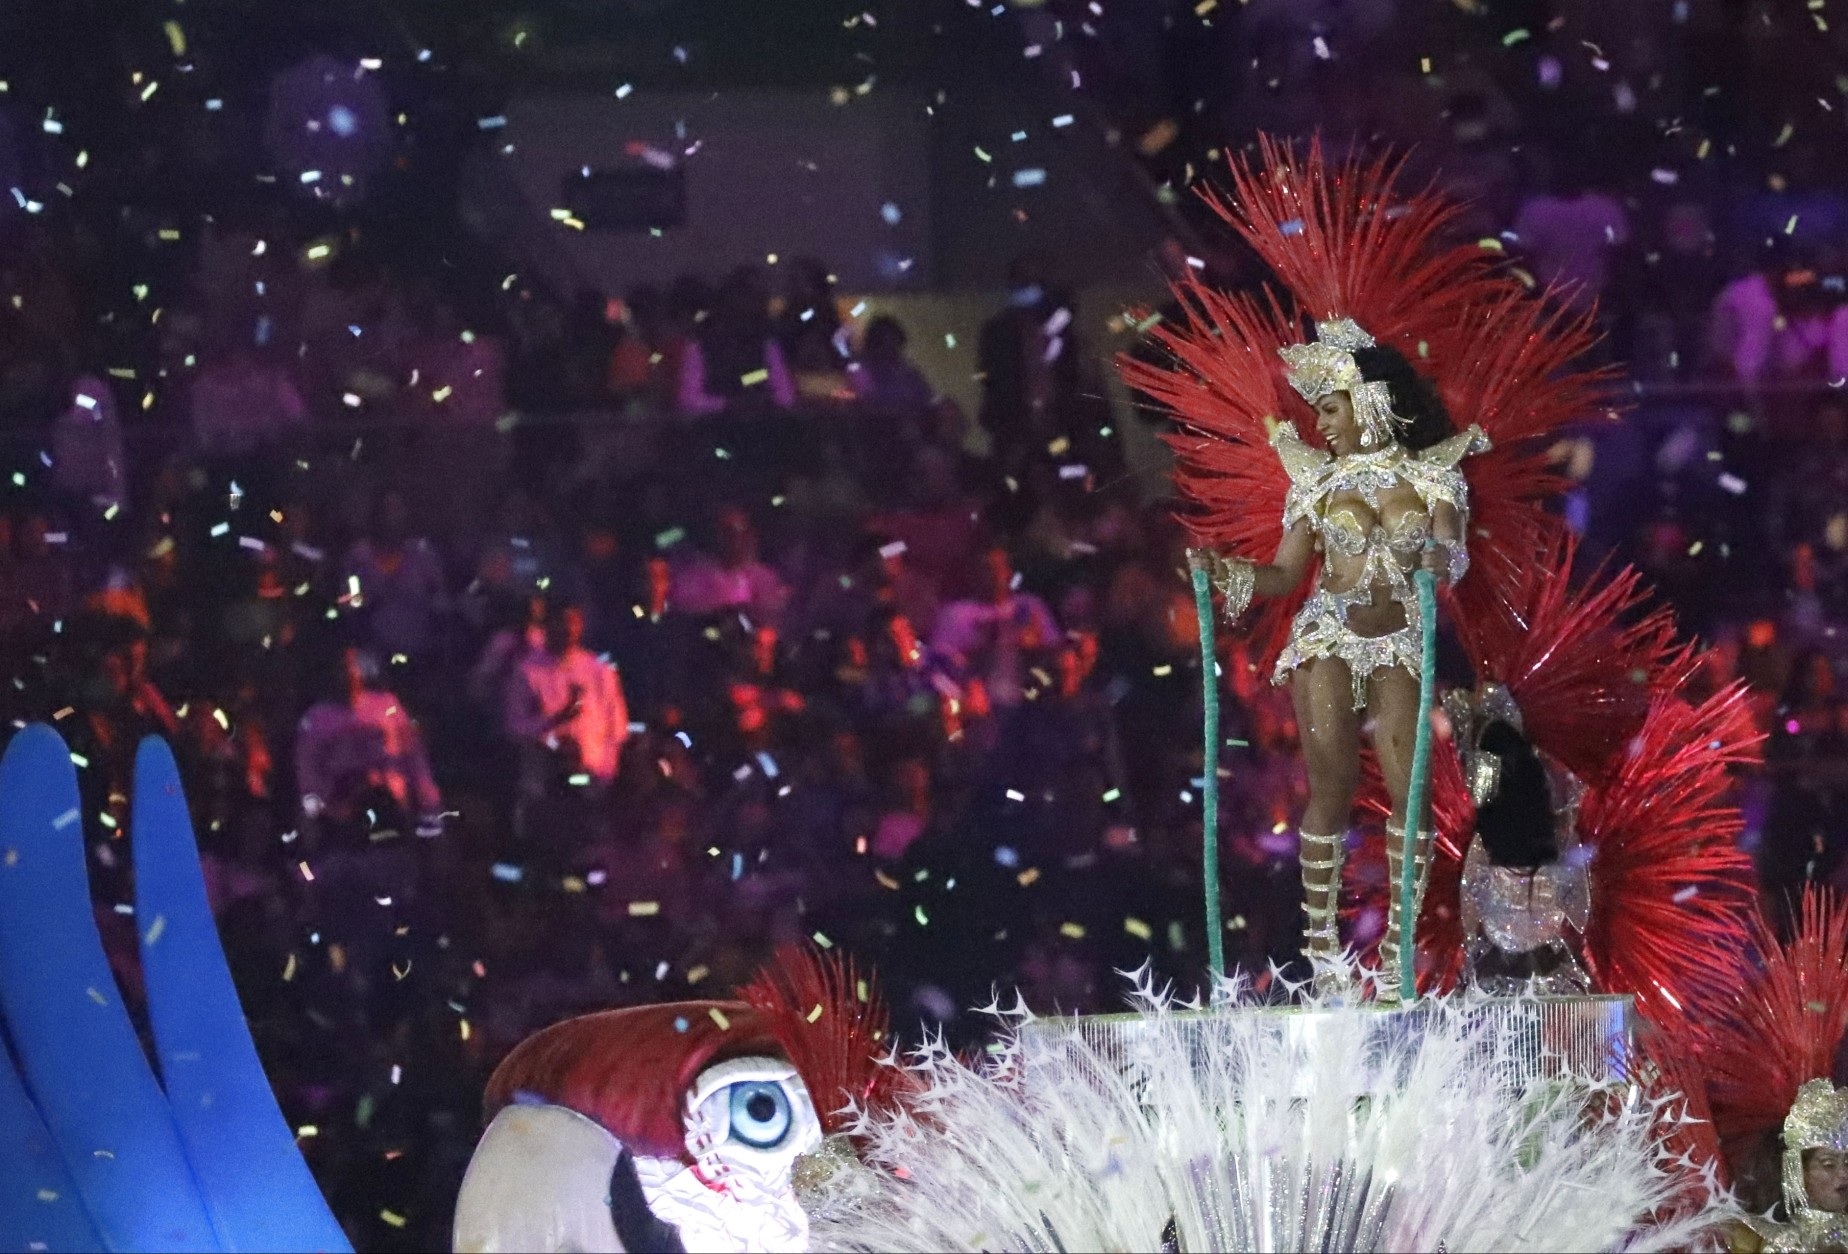 Plumed dancers appear as part of the closing ceremony in the Maracana stadium at the 2016 Summer Olympics in Rio de Janeiro, Brazil, Sunday, Aug. 21, 2016. (AP Photo/Mark Humphrey)